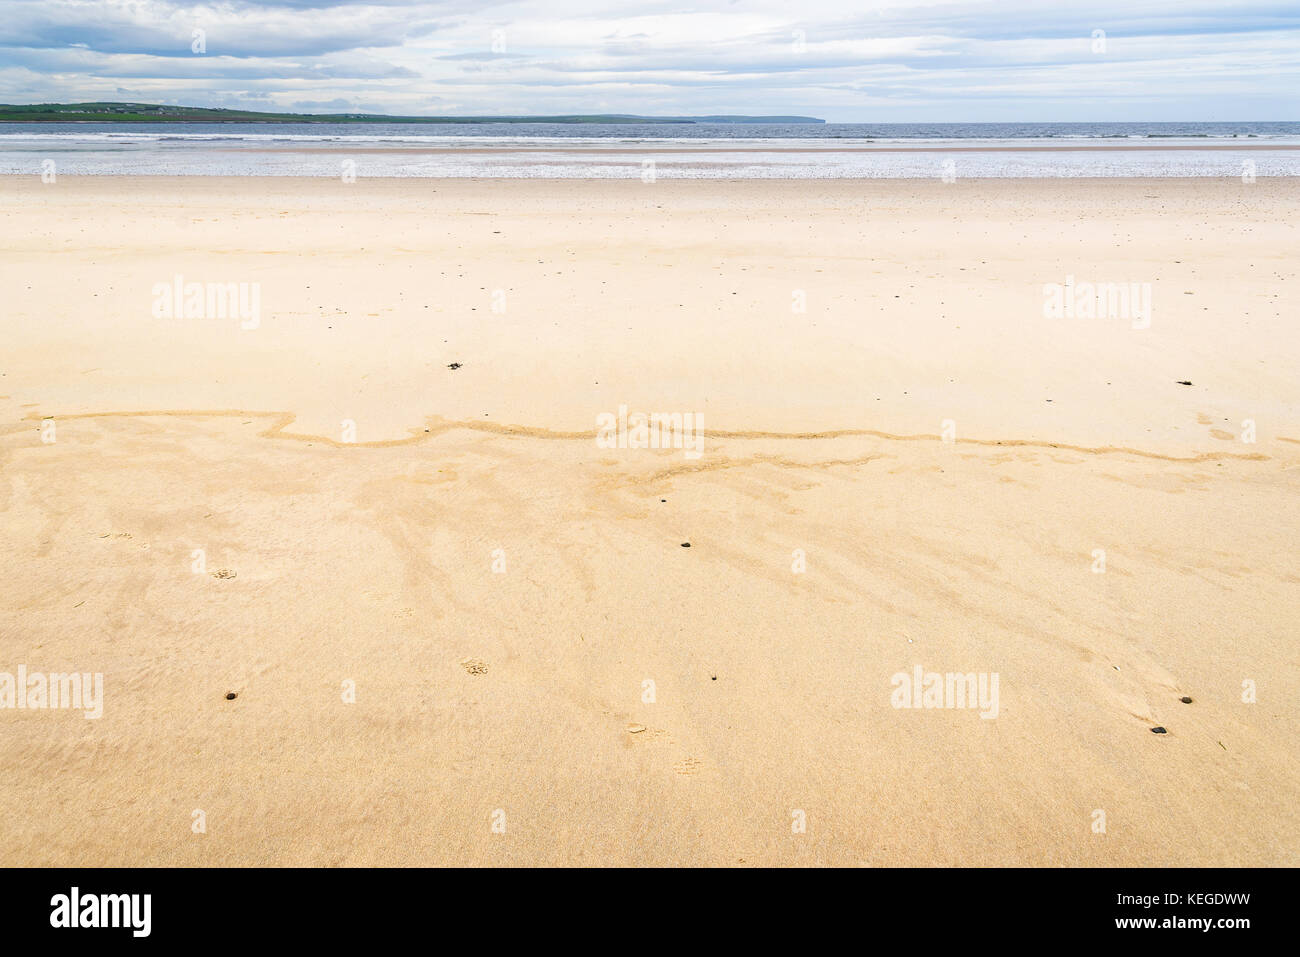 dunnet beach seascapes - Stock Image